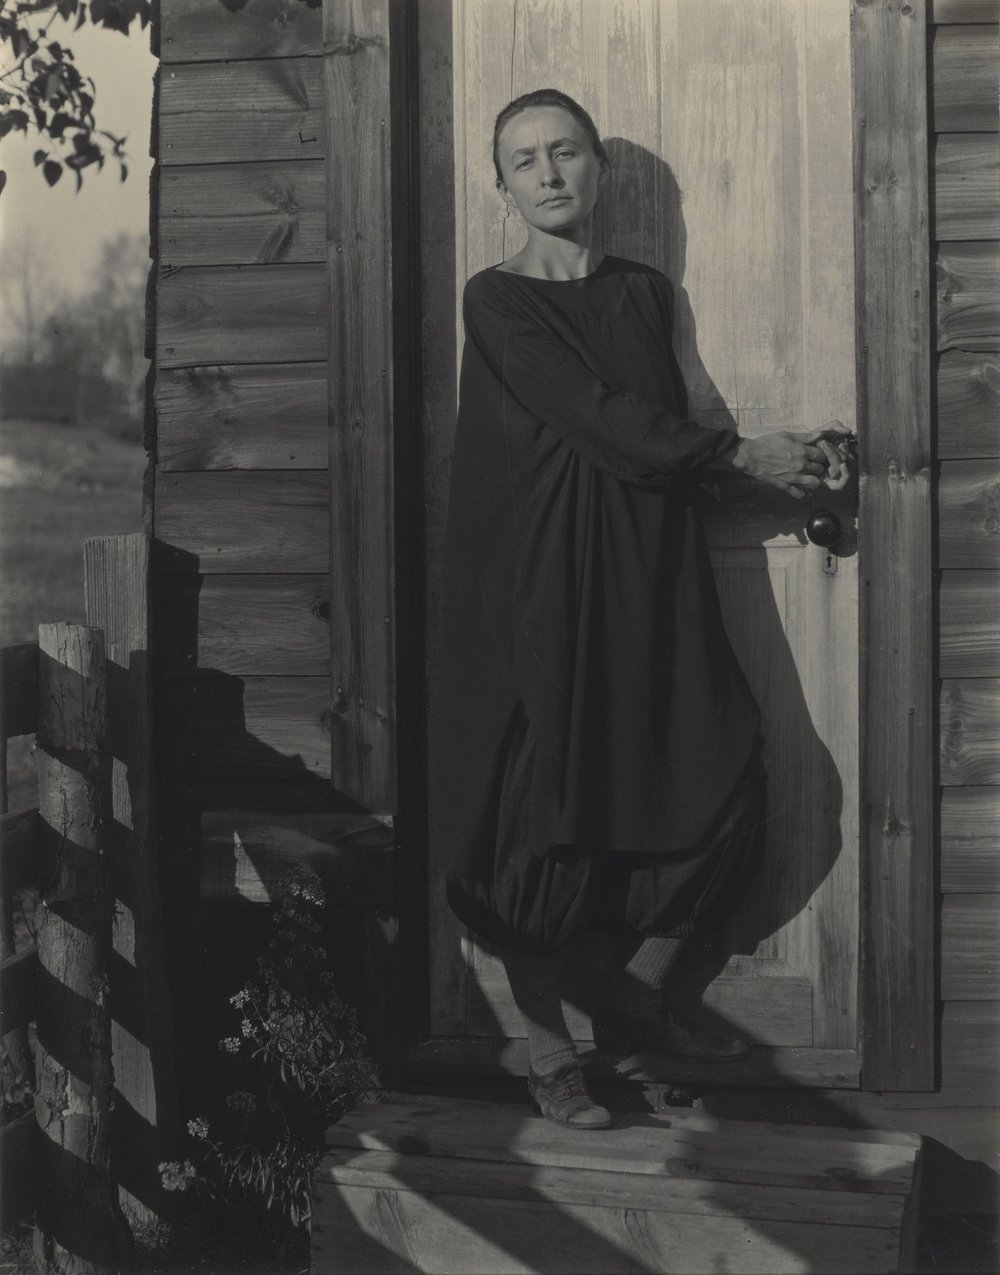 A photo of Georgia O'Keefe taken by Alfred Stieglitz in 1920.